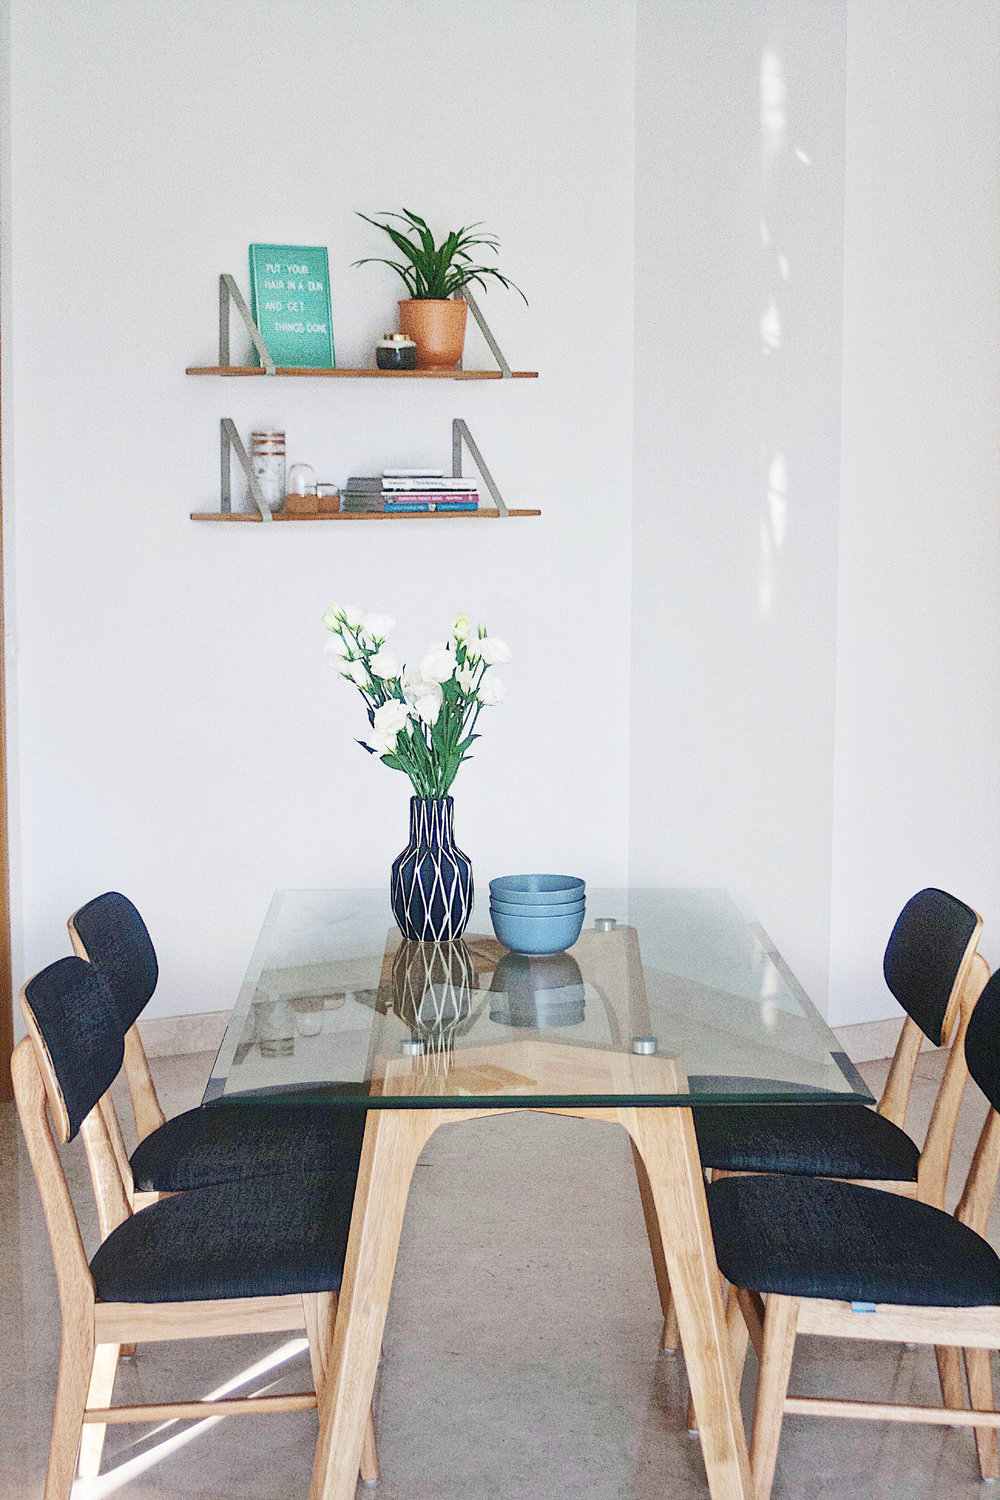 Turn Key Project Dining Room